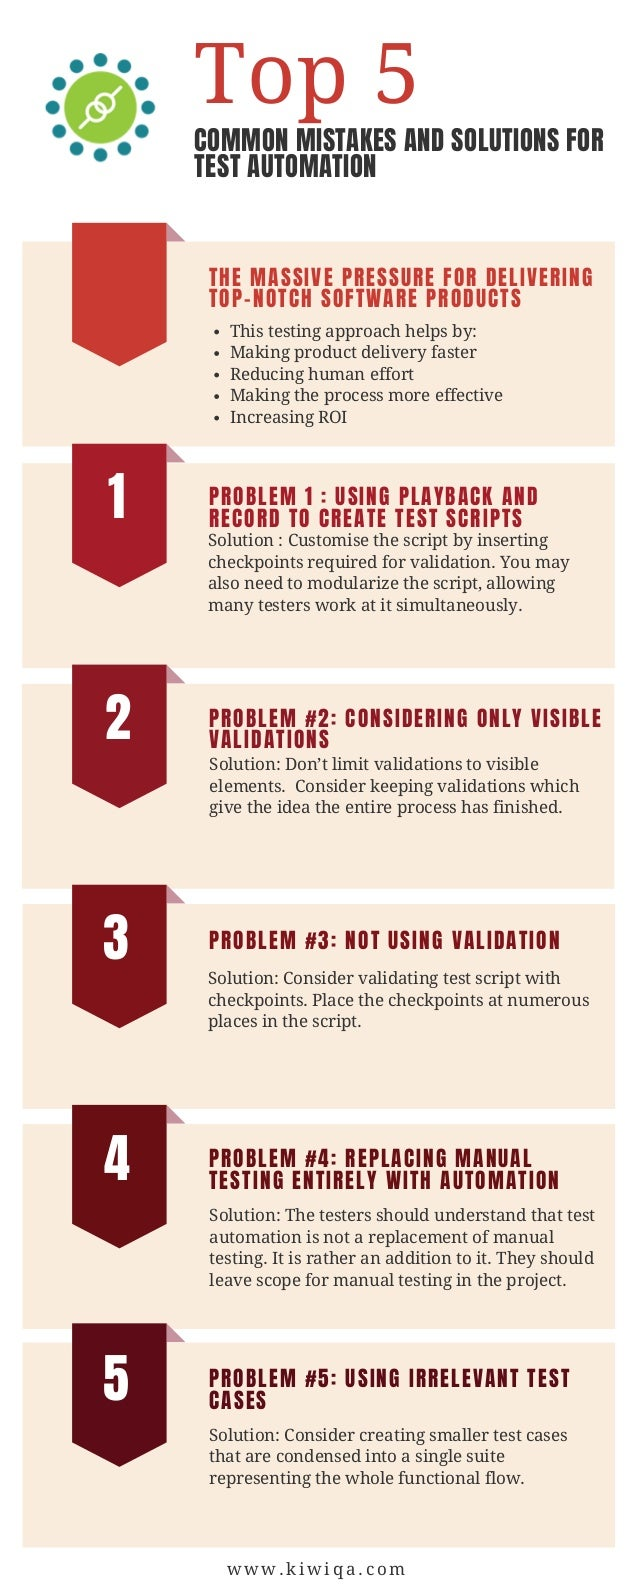 COMMON MISTAKES AND SOLUTIONS FOR TEST AUTOMATION THE MASSIVE PRESSURE FOR DELIVERING TOP-NOTCH SOFTWARE PRODUCTS This tes...